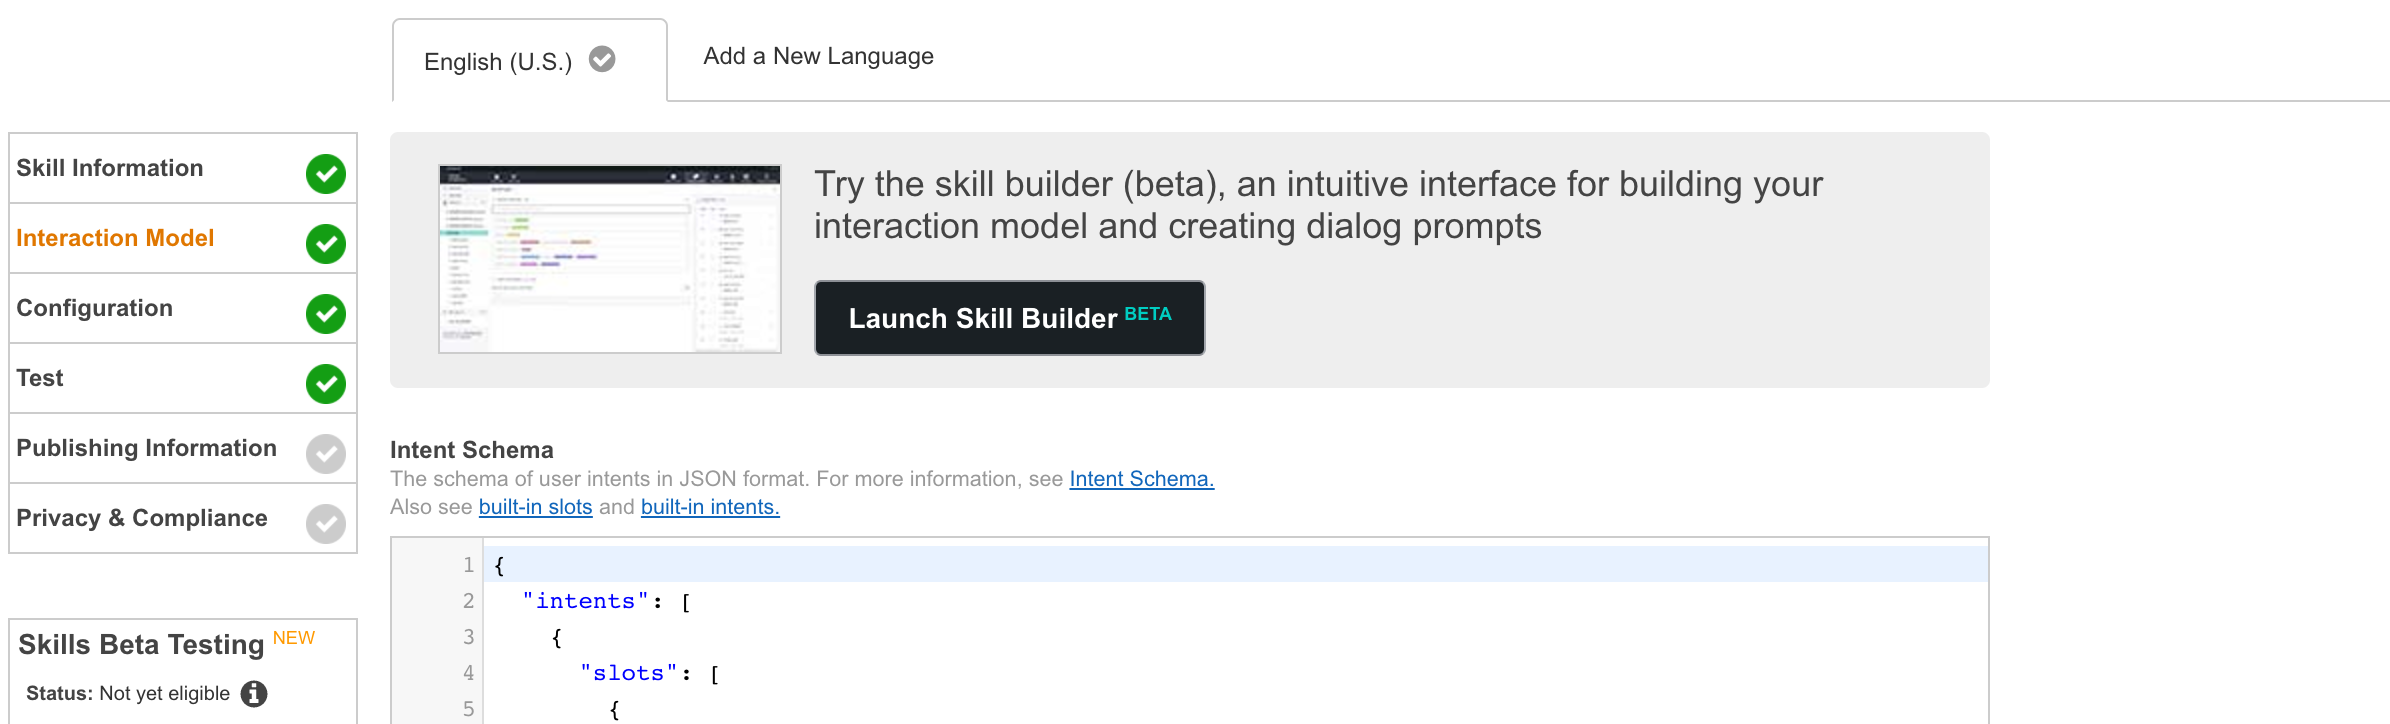 How to create an Alexa skill with Node js and DynamoDB